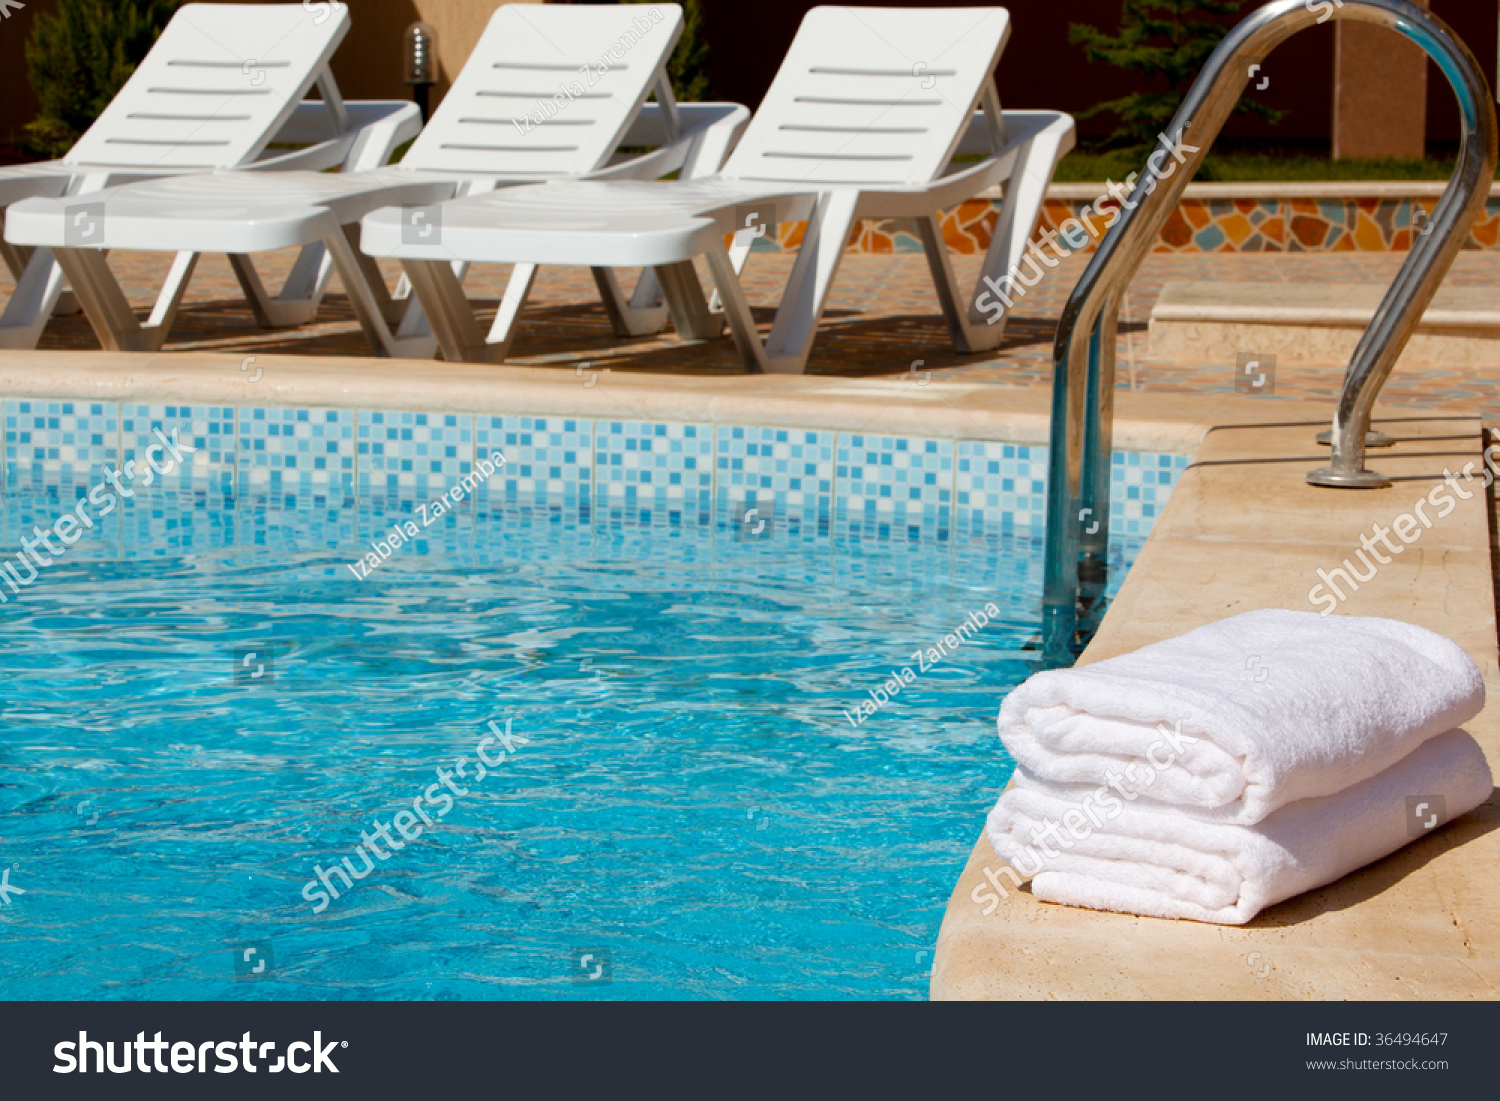 White Pool Deck Chairs: White Towels By The Pool With Deck Chairs In The Back